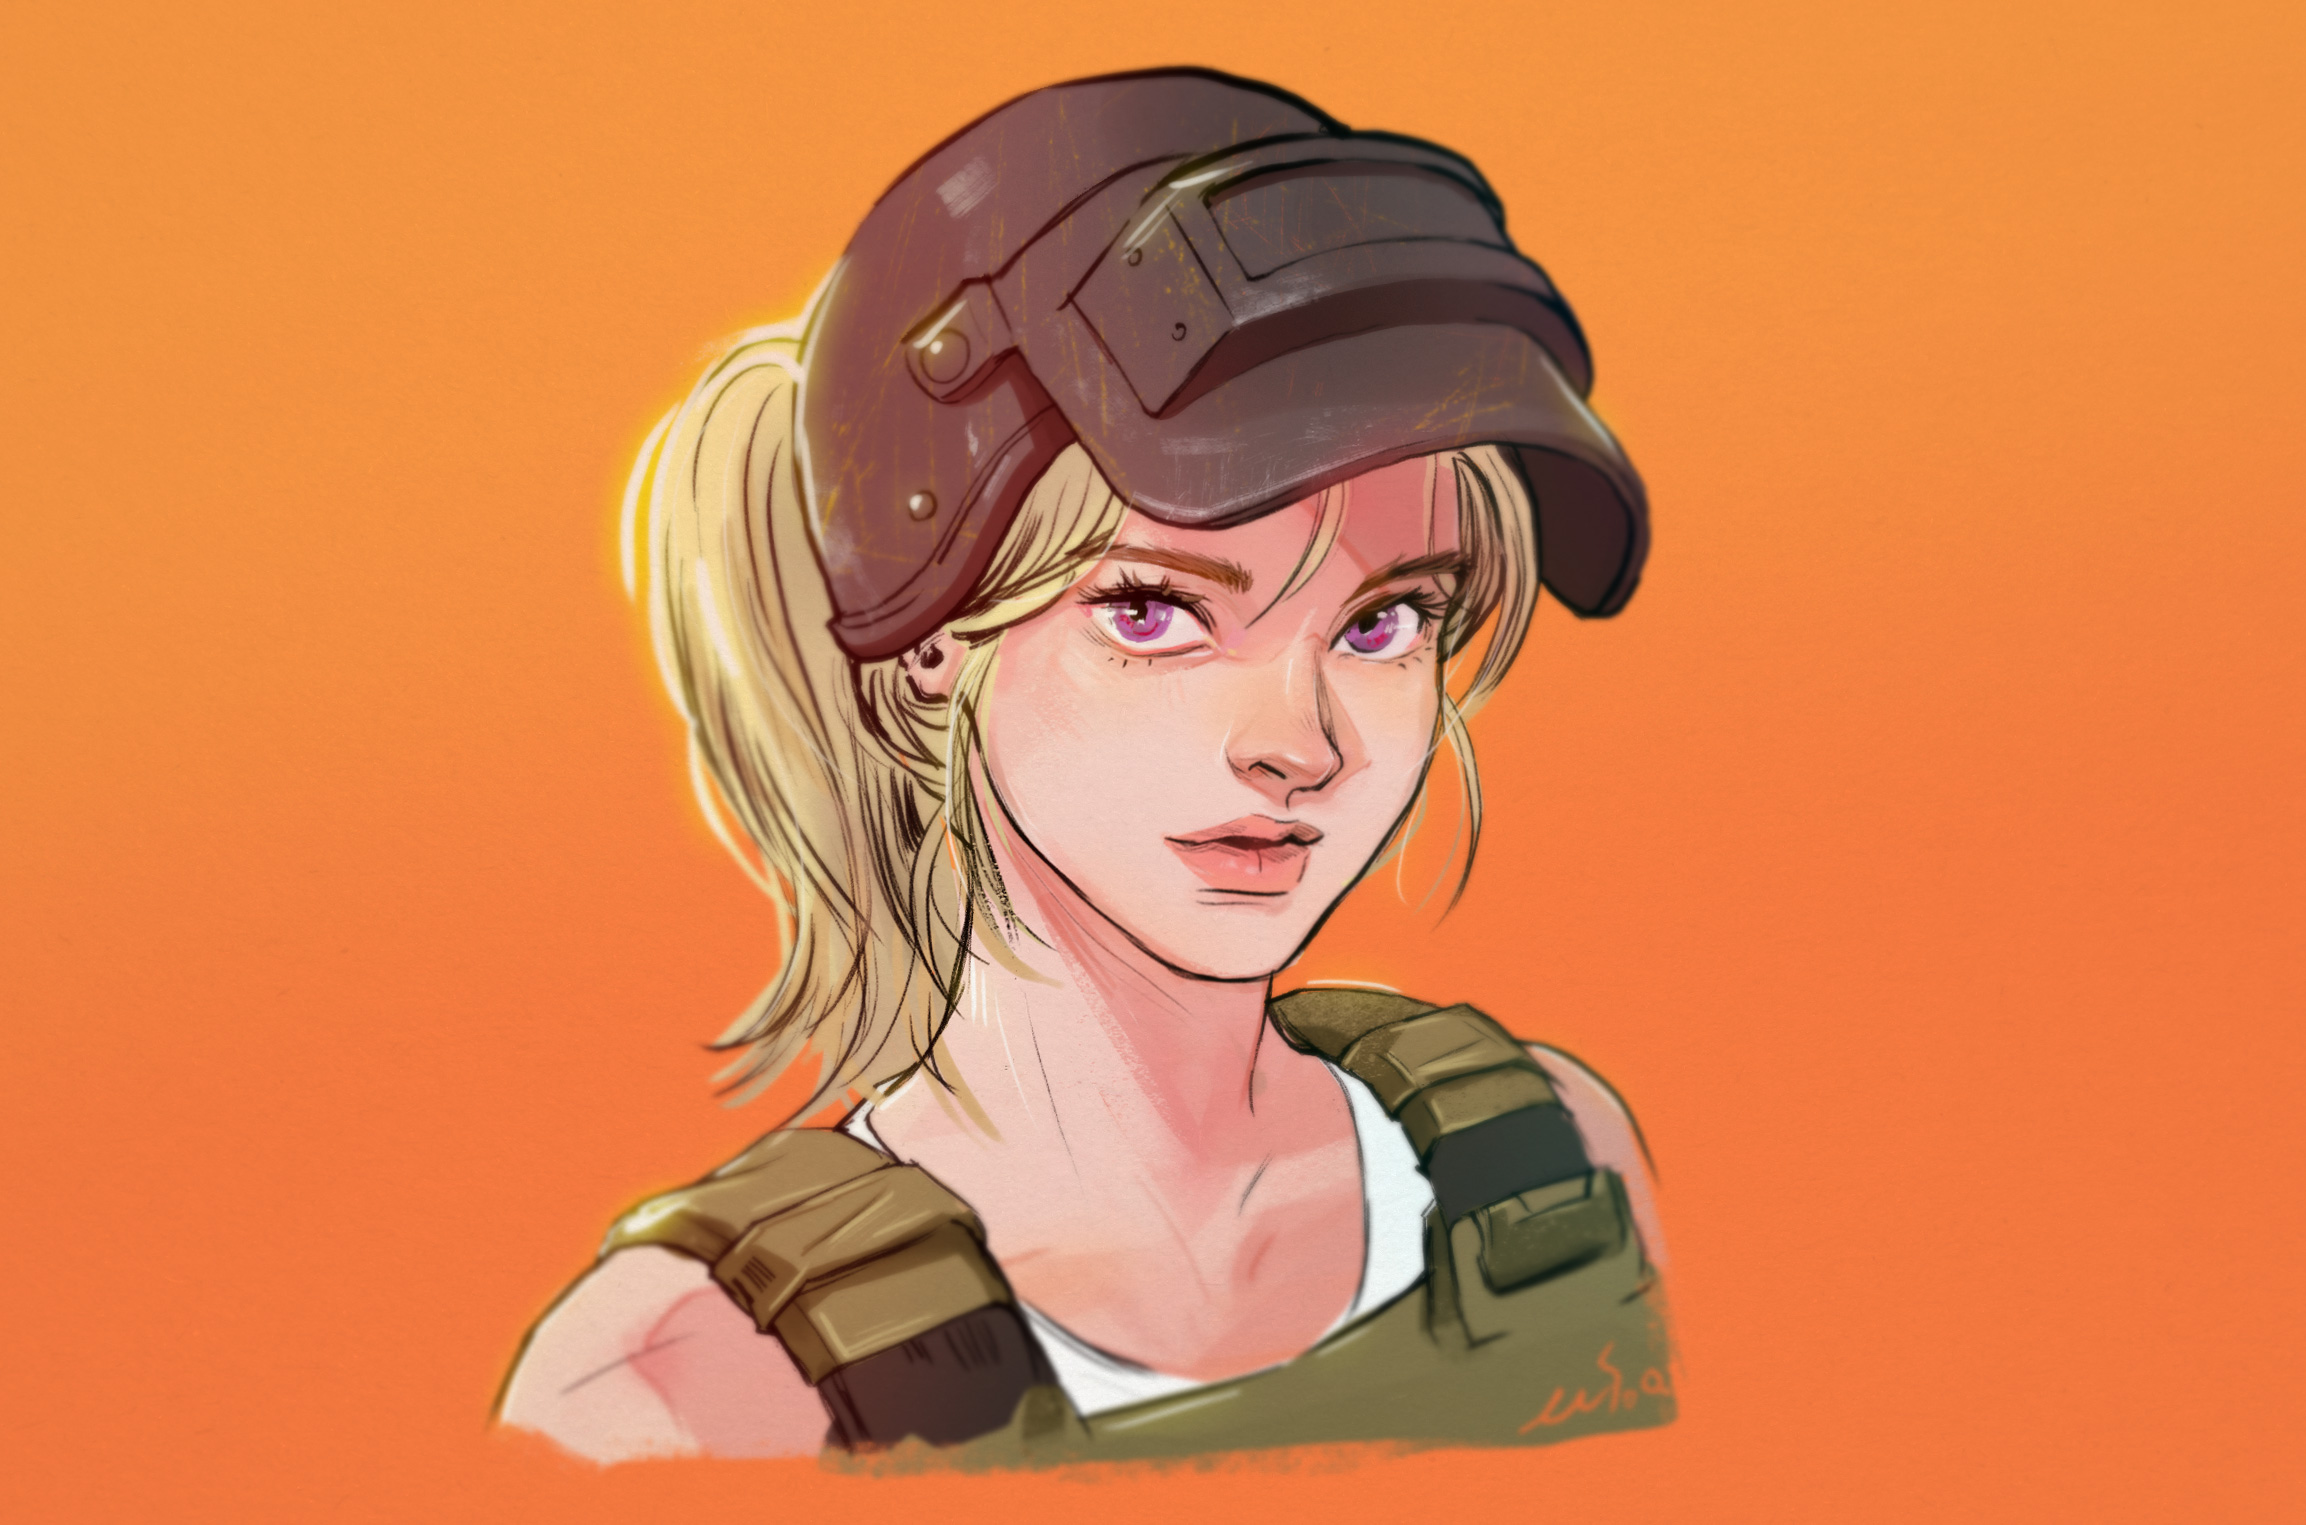 2048x1152 Pubg Game Girl Fanart 2048x1152 Resolution Hd 4k: 1366x768 Pubg Girl 1366x768 Resolution HD 4k Wallpapers